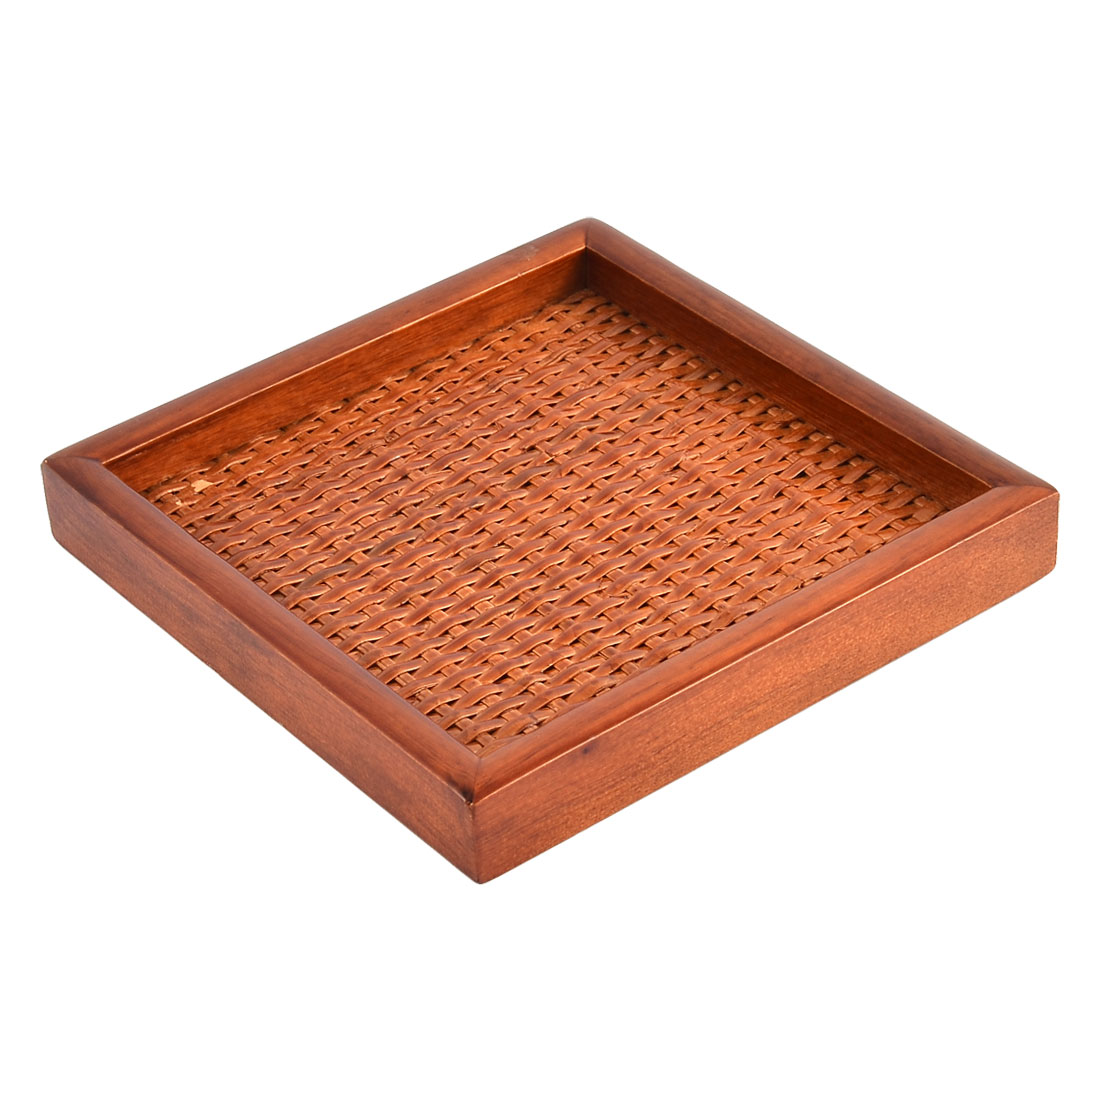 Restaurant Wood Rectangle Shape Lunch Food Serving Tray Container 15*15*2cm